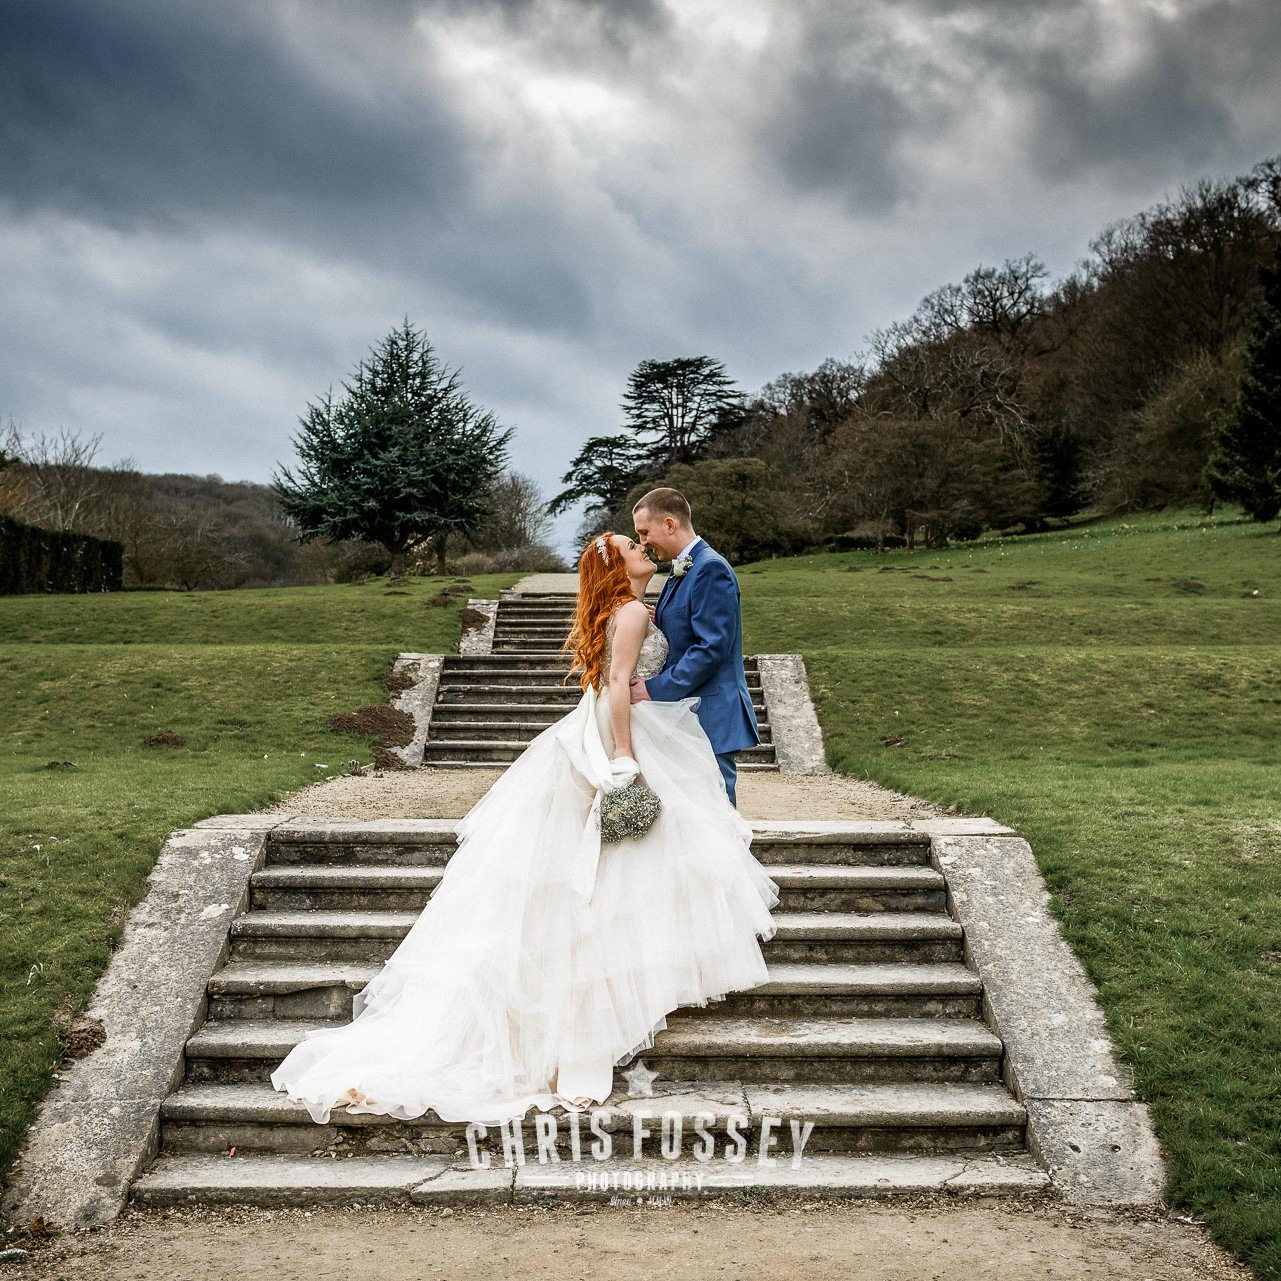 Warwickshire Wedding Photography Portfolio-Dumbleton Hall Wedding Photography by Worcestershire Wedding Photographer Chris Fossey Photography-59